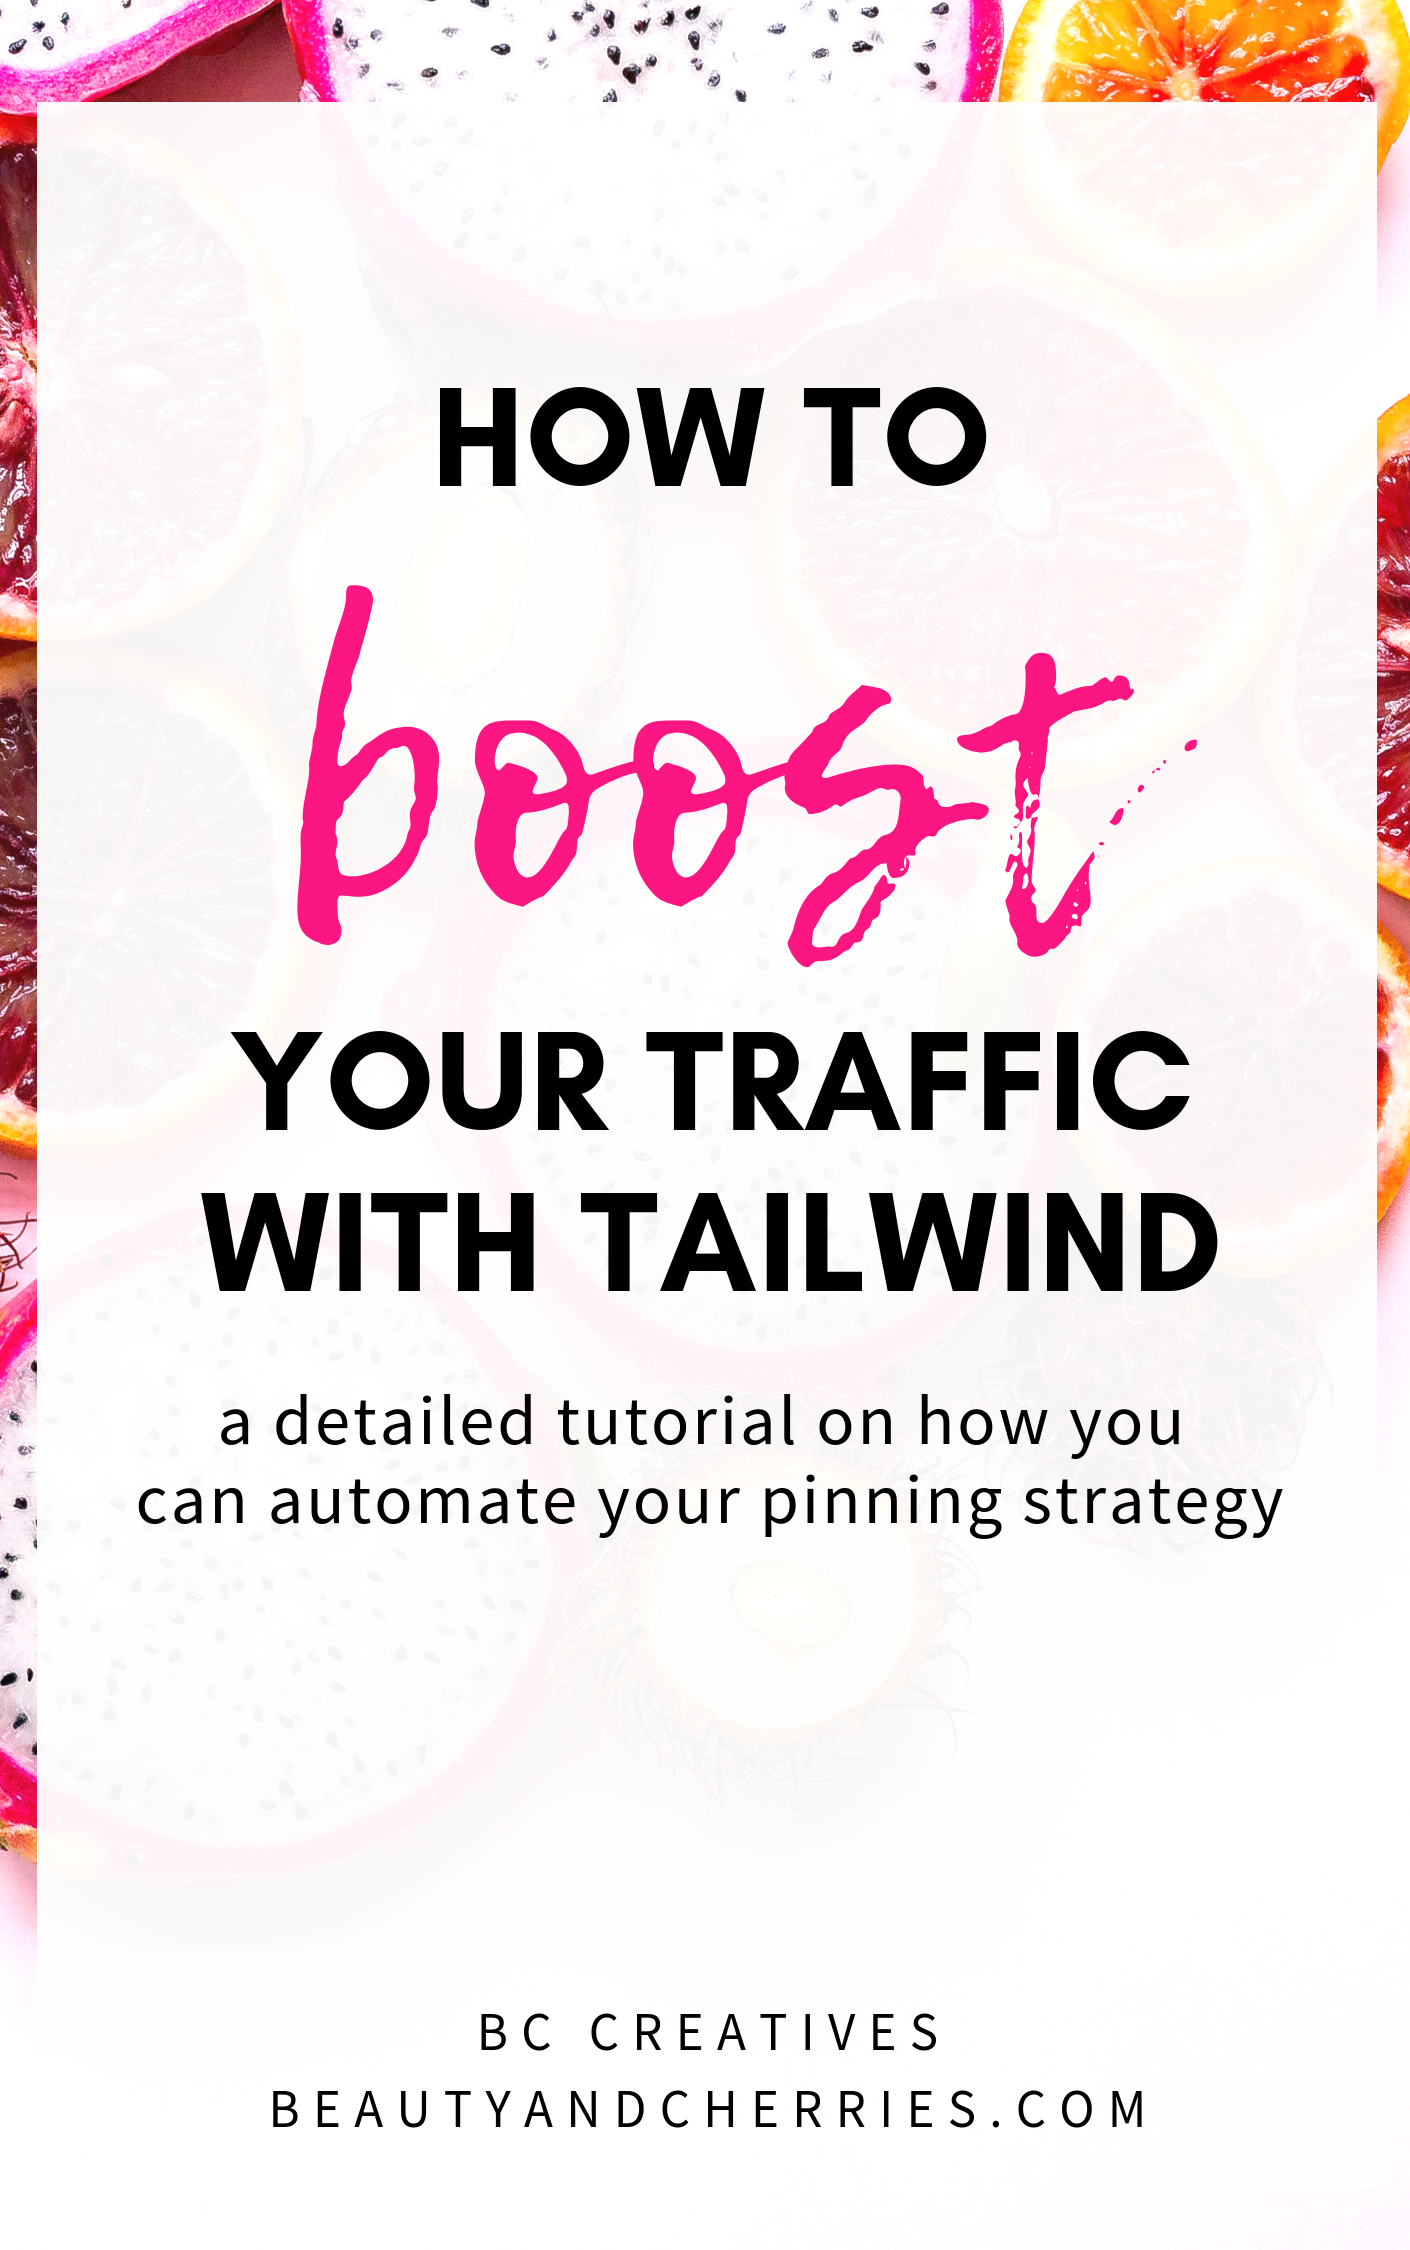 how-to-use-tailwind-to-boost-pinterest-traffic